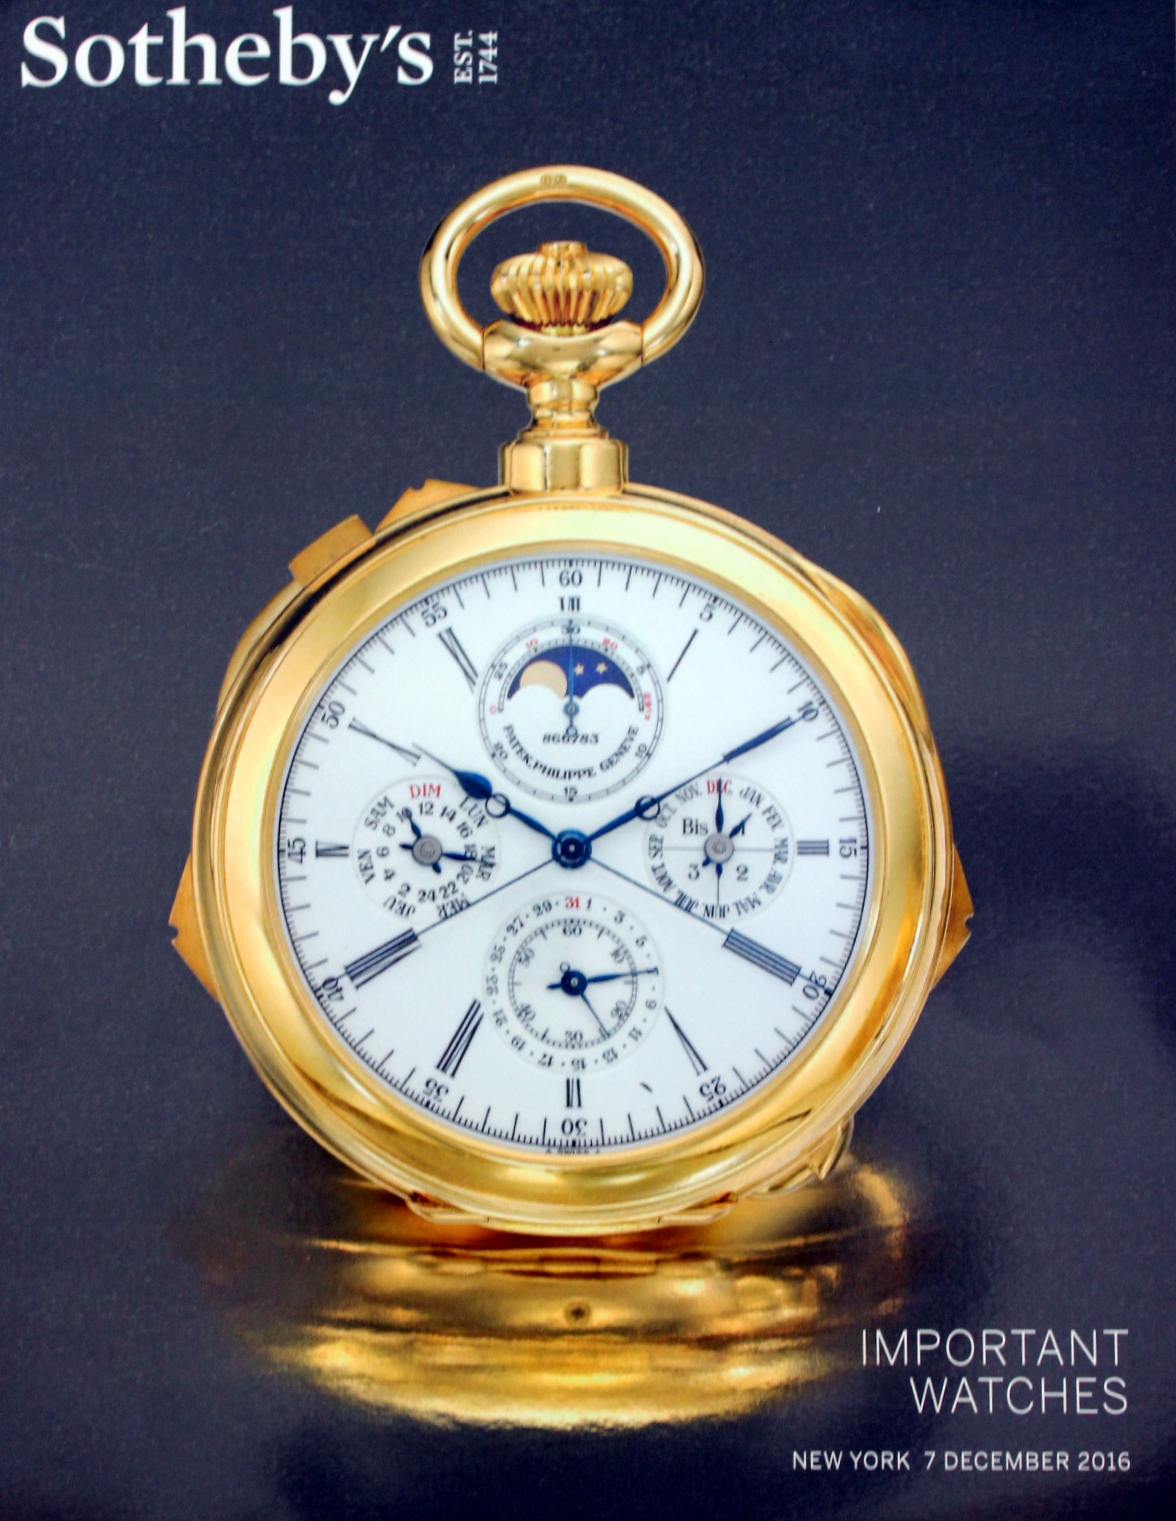 ih sothebys important watches new york 12716 sale code